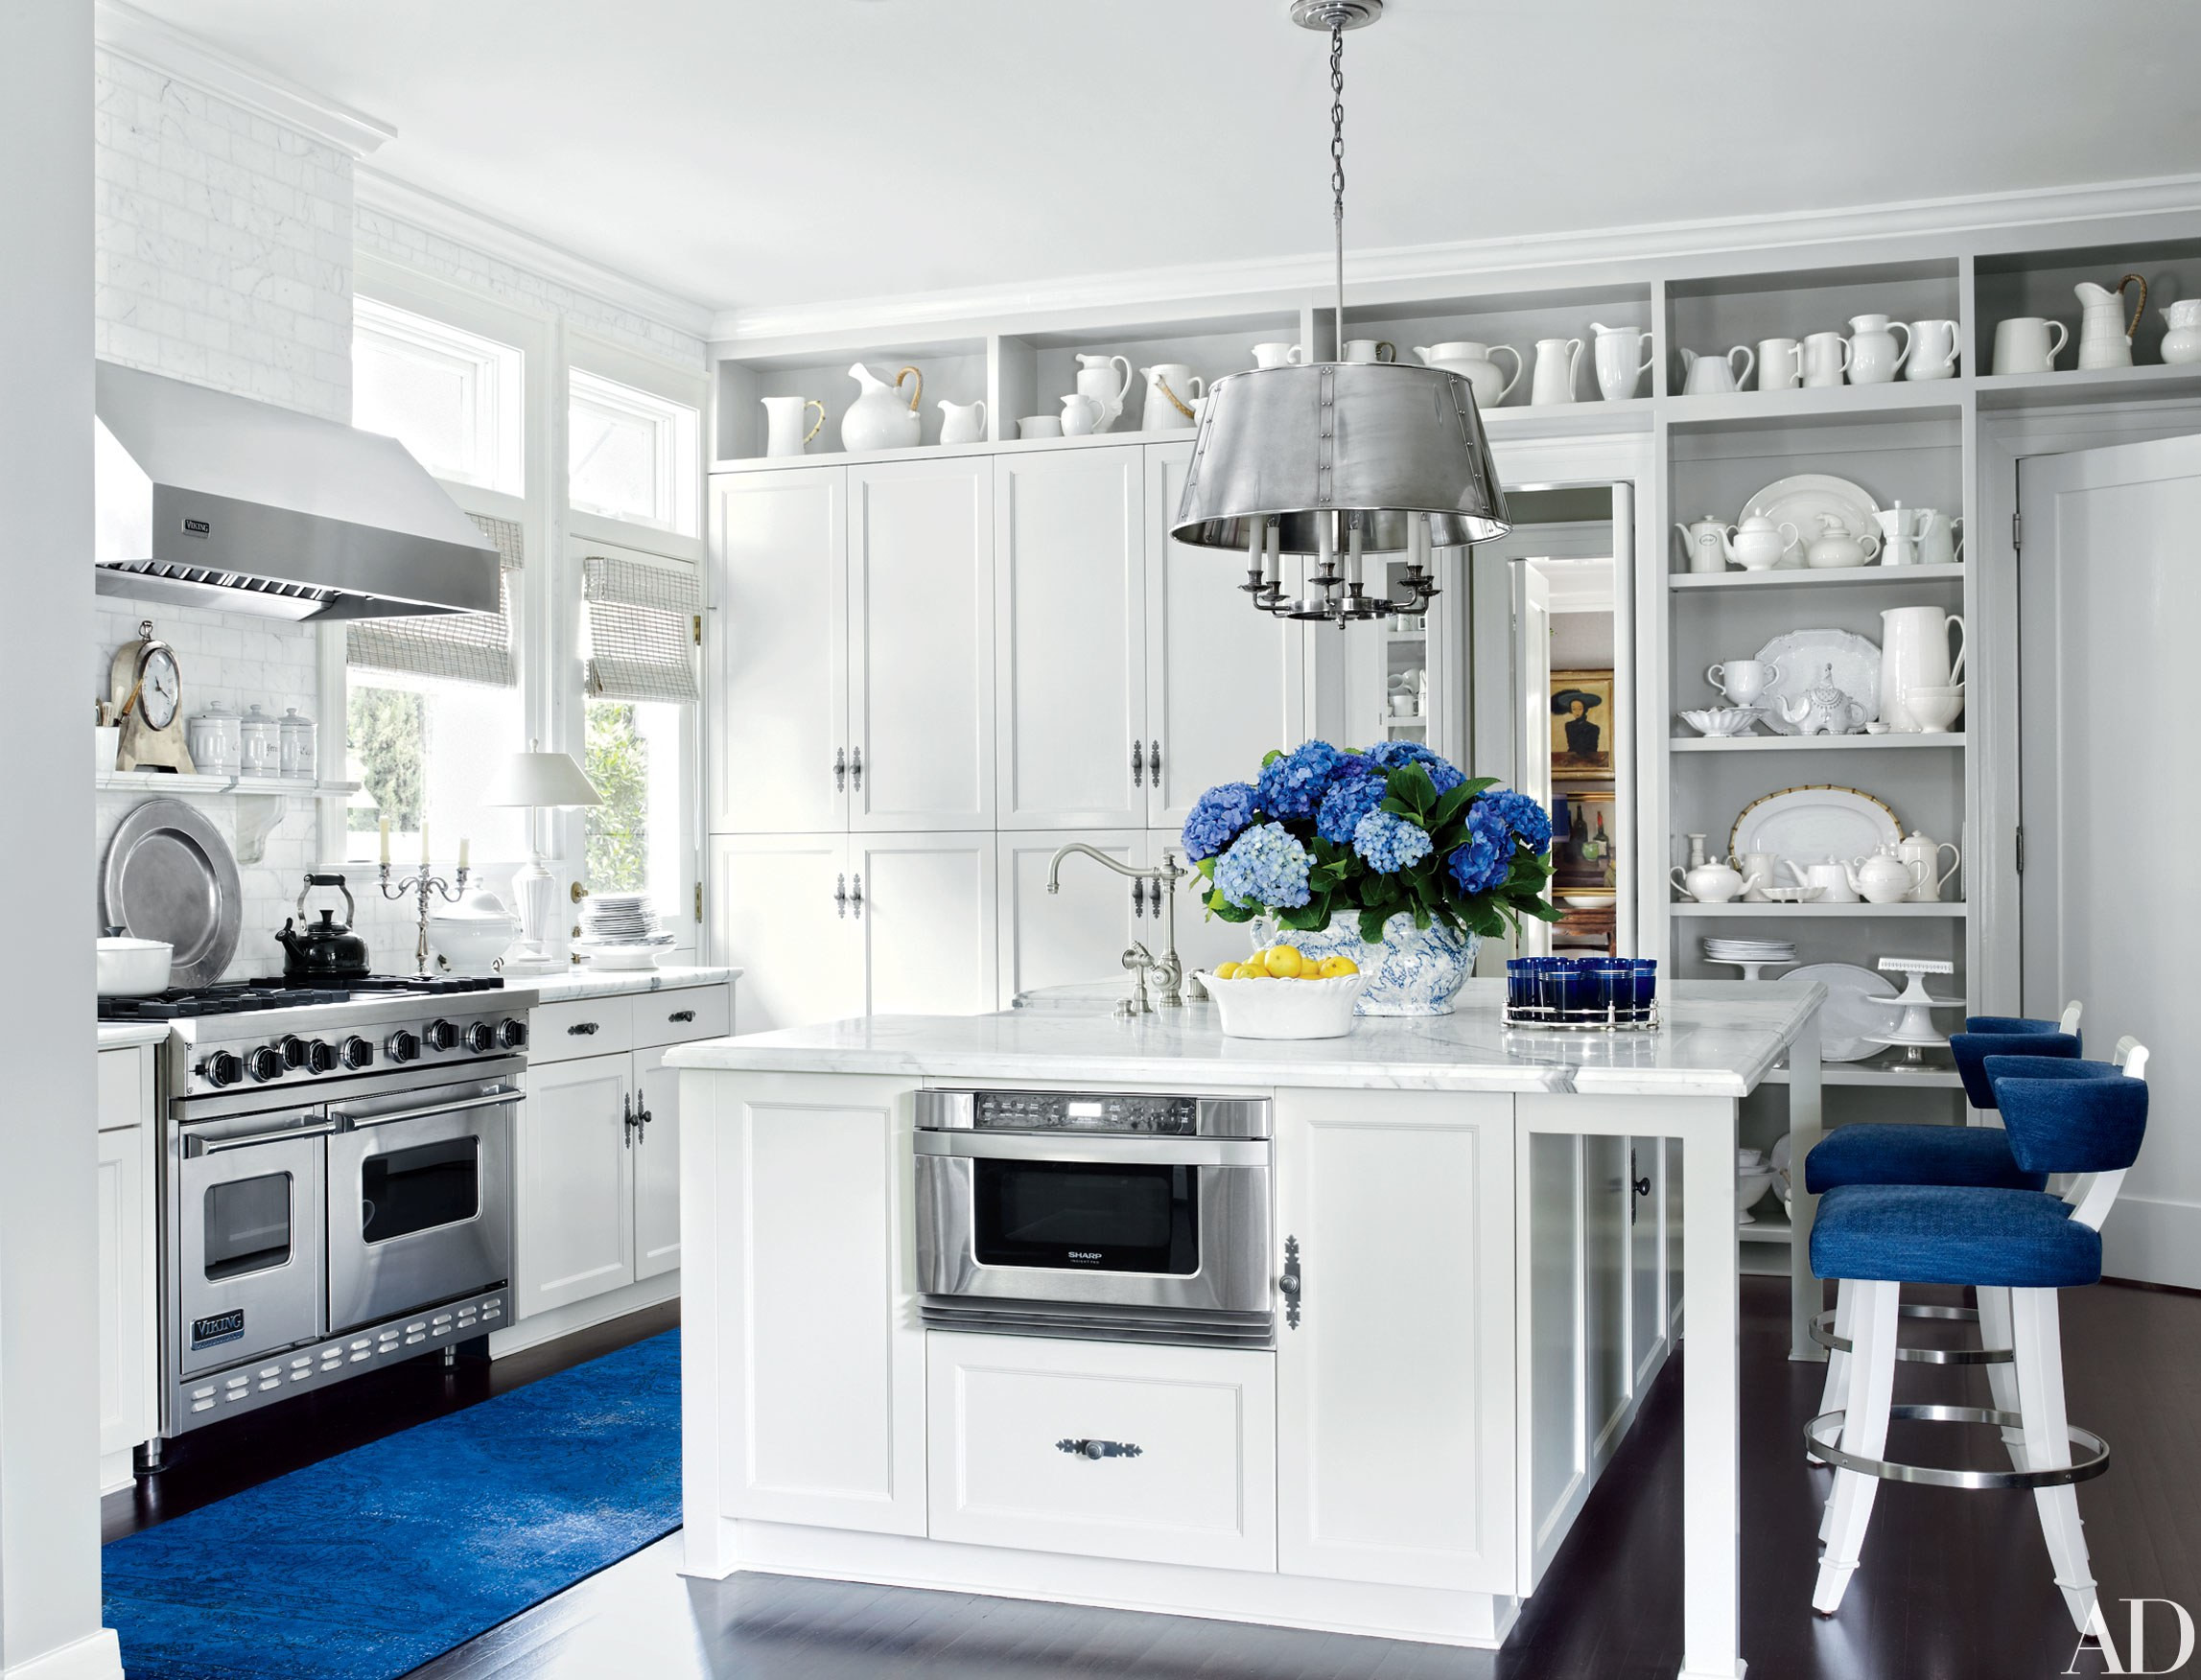 Best ideas about Blue And White Kitchen Decor . Save or Pin 30 Rooms That Showcase Blue and White Decor s Now.